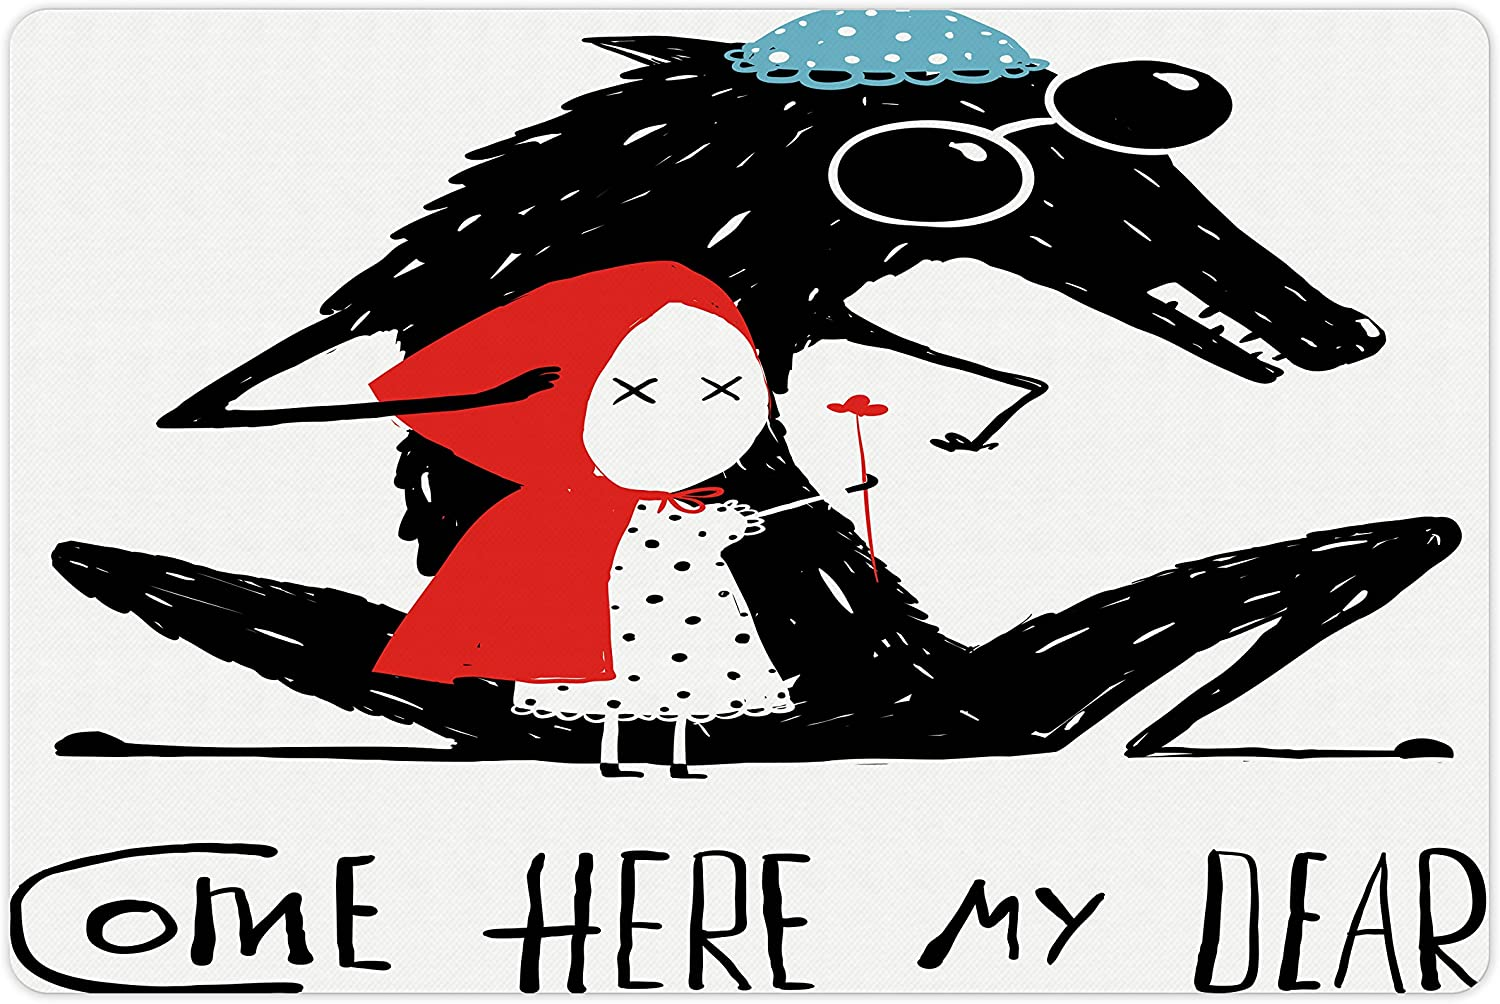 Lunarable Lifestyle Pet Mat for Food and Water, Come Here My Dear Words with Grandma Wolf and Snow White Kids Graphic Print, Rectangle Non-Slip Rubber Mat for Dogs and Cats, Teal Red Black